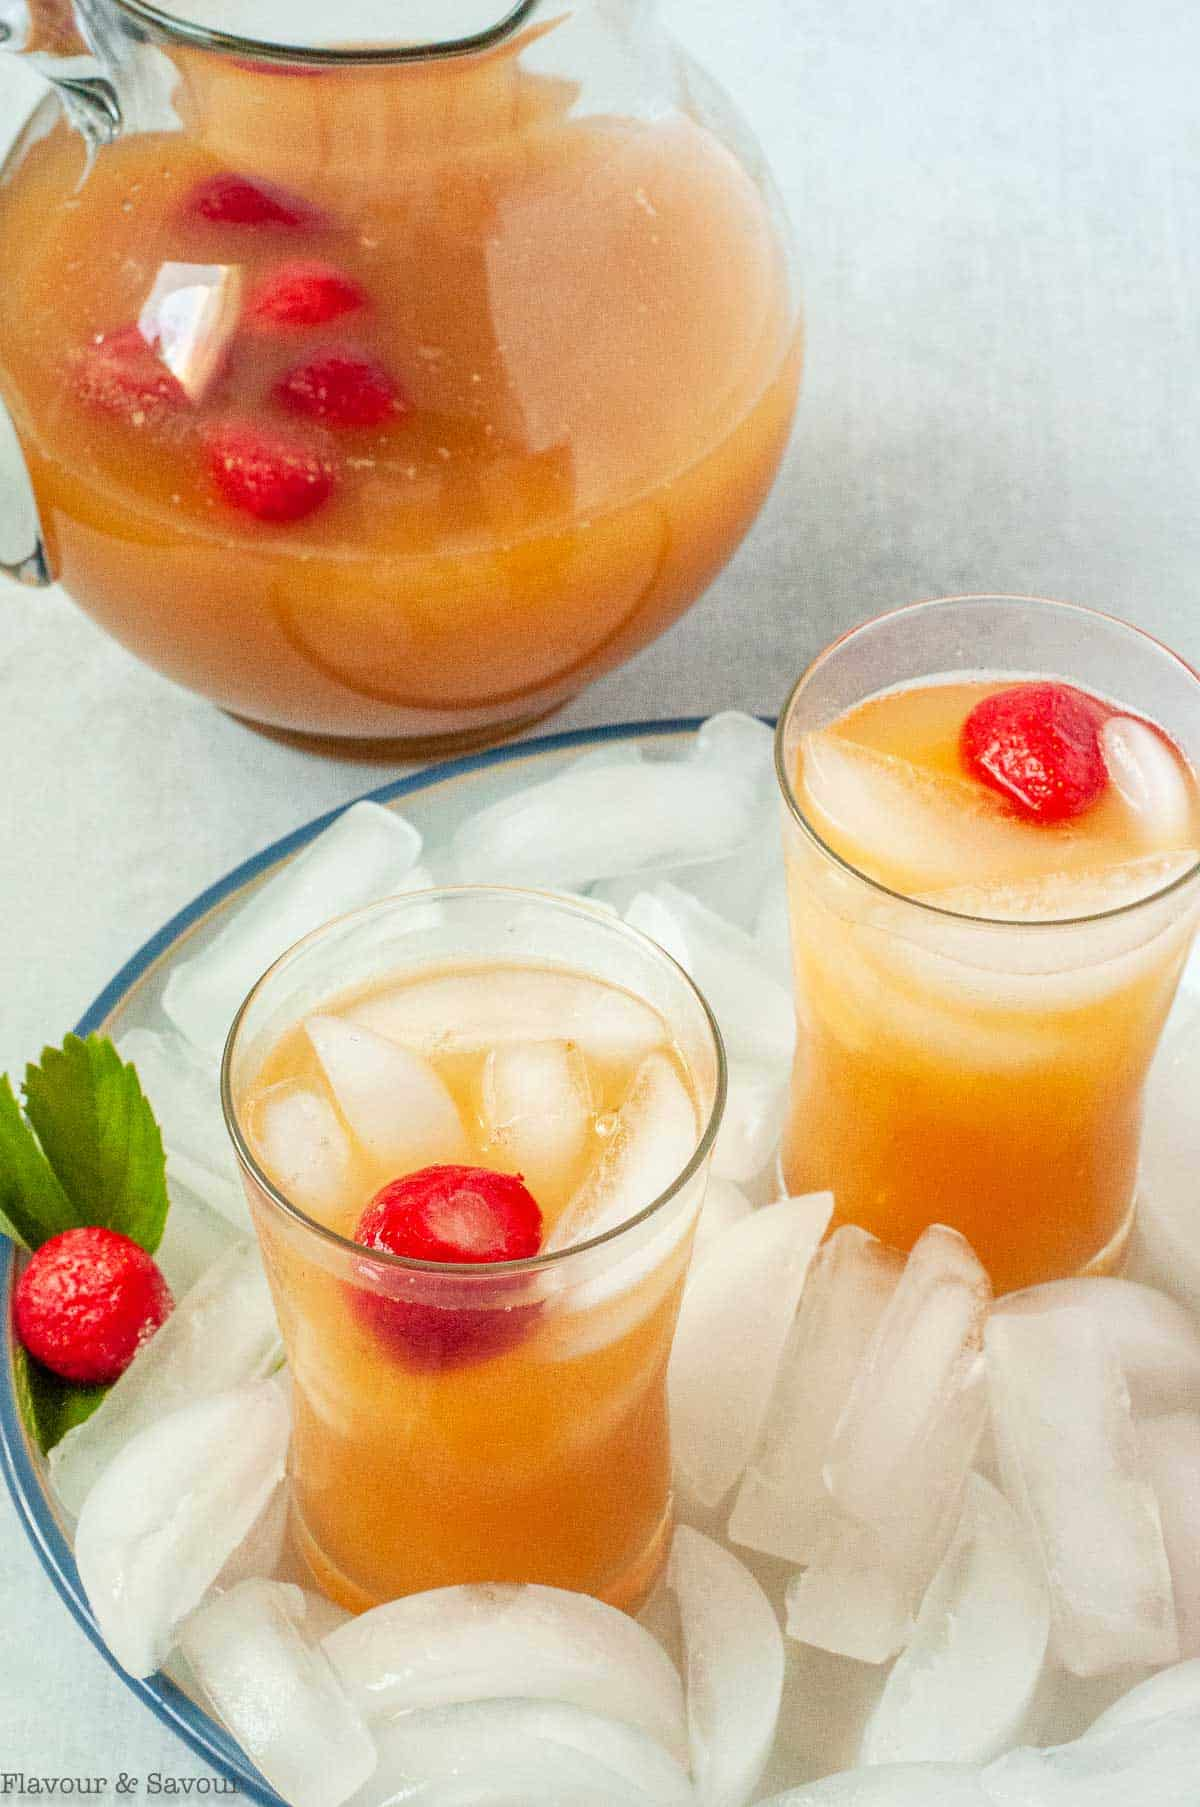 a pitcher of peach tea with two glasses on ice